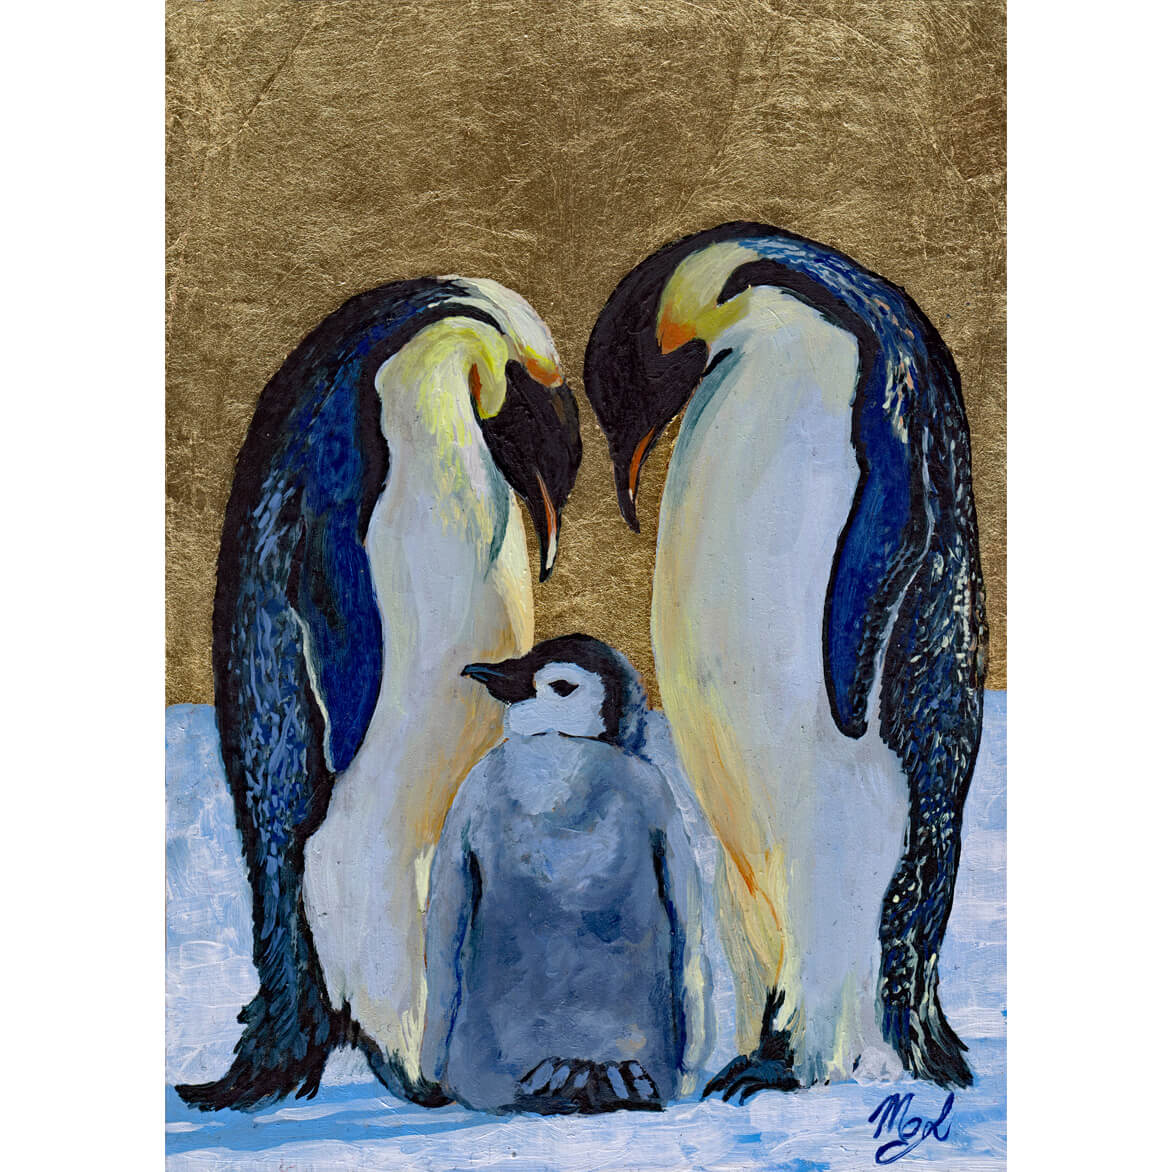 A family of penguins represented as the Holy Family